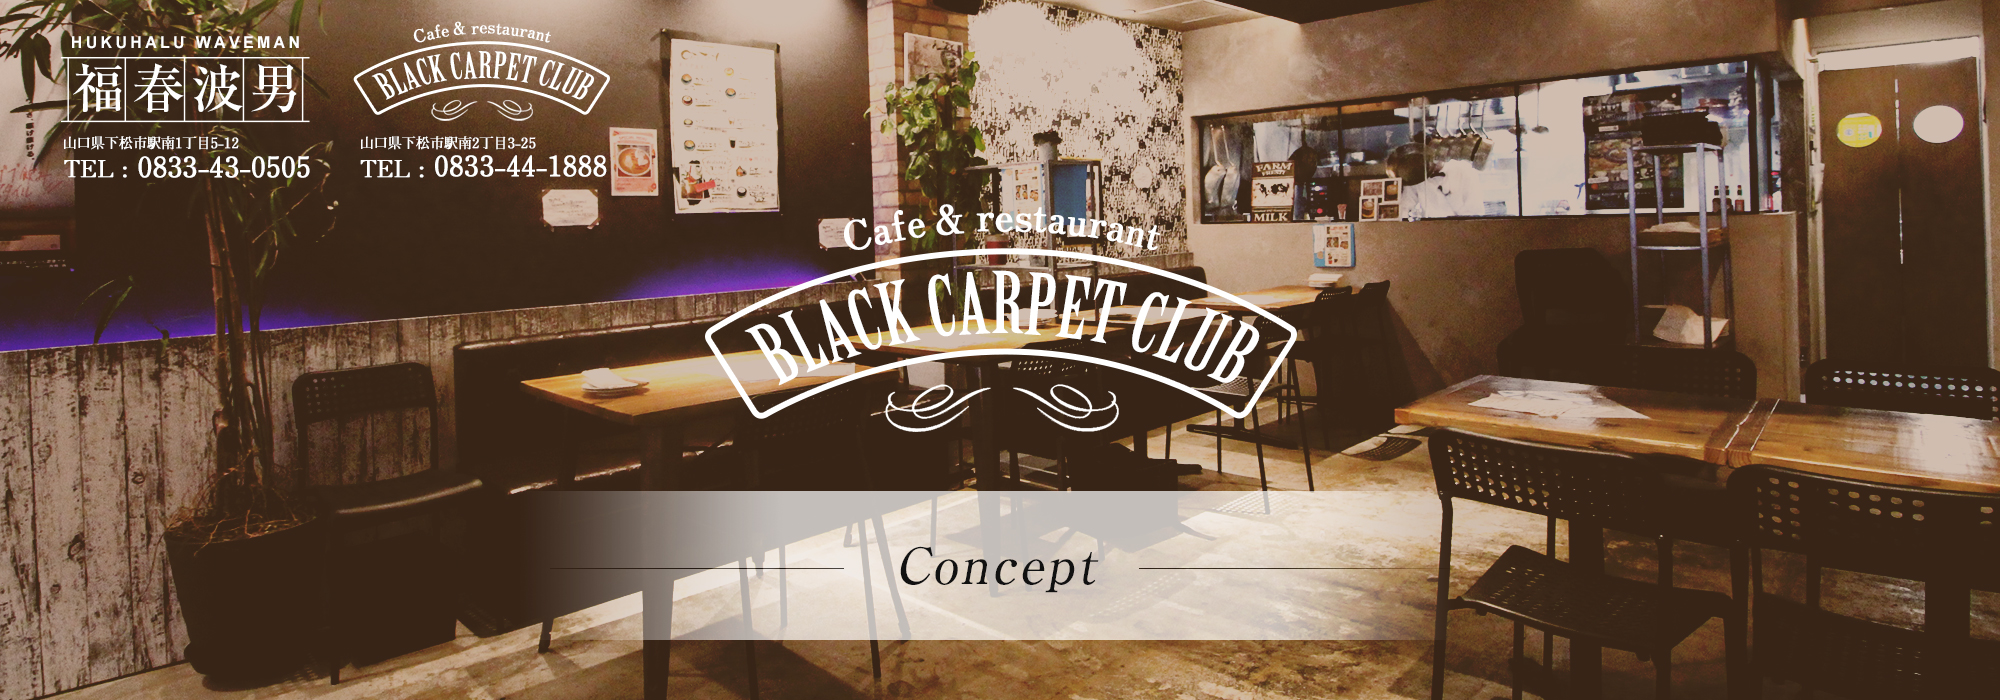 Concept/BLACK CARPET CLUB